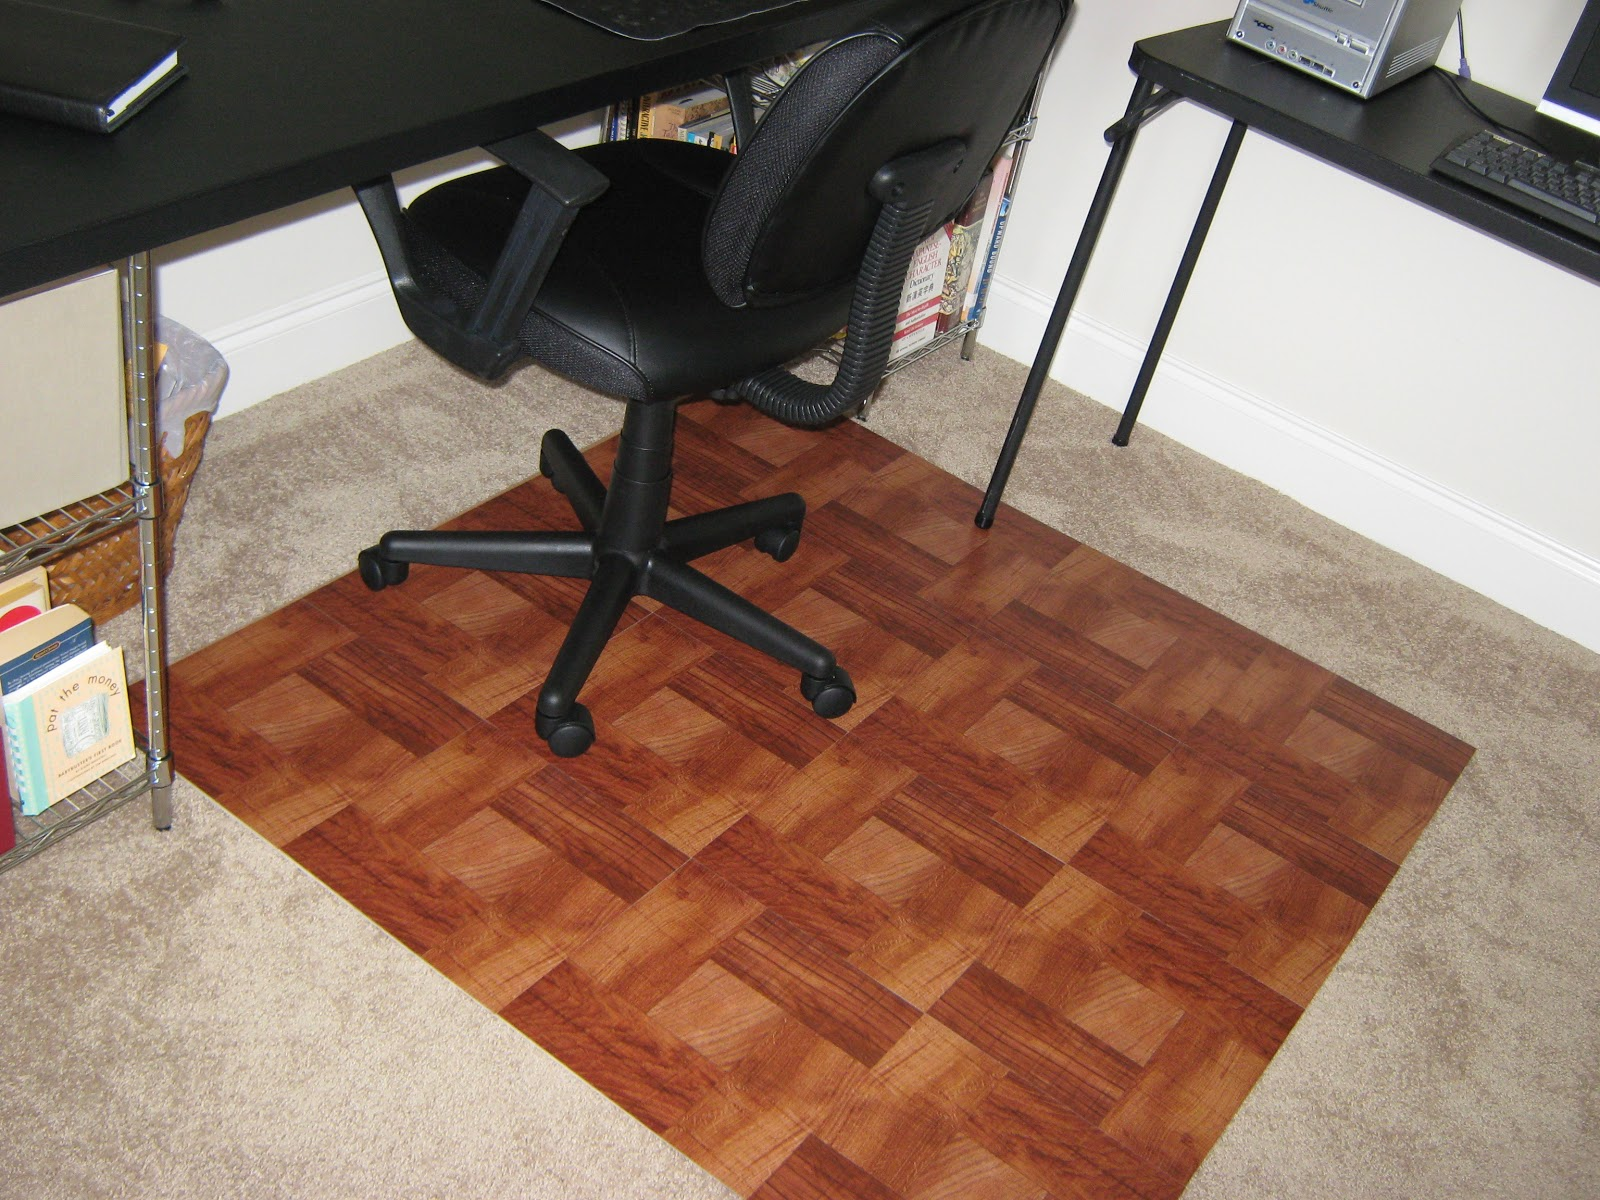 Why Use Office Chair Mats?